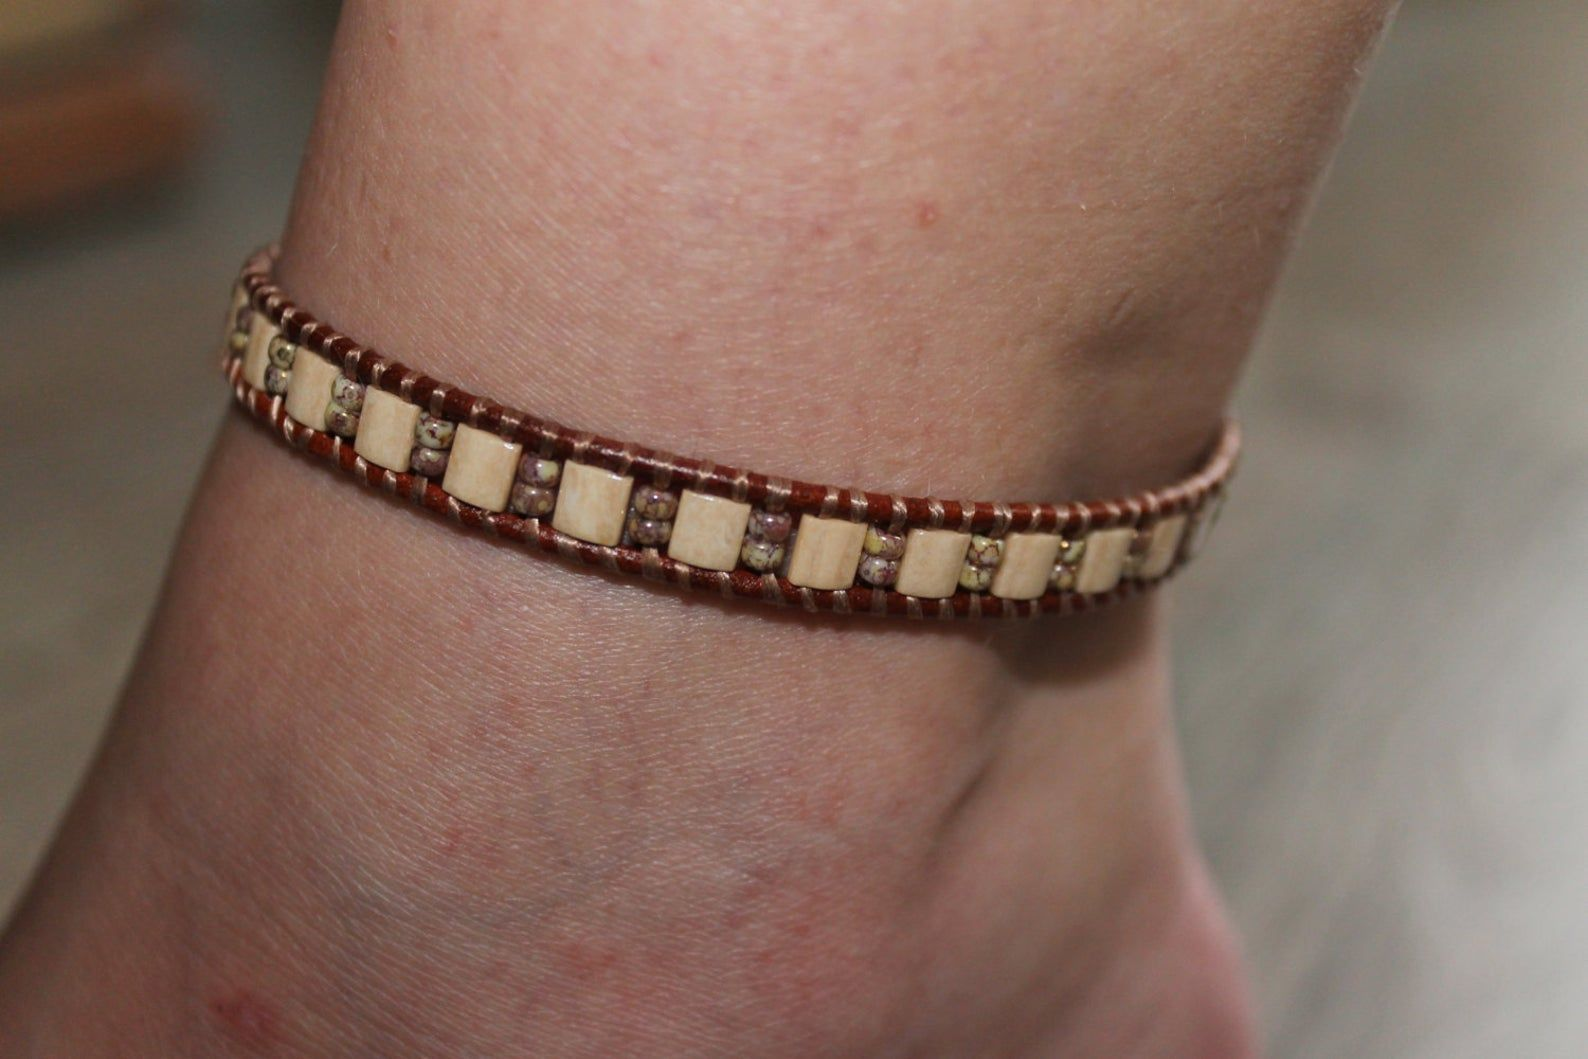 anklet beaded summer foot jewelry anklet bracelet ankle bracelet beach anklet women anklet trendy jewelry gift for her boho bohemian#ankle #anklet #beach #beaded #bohemian #boho #bracelet #foot #gift #jewelry #summer #trendy #women